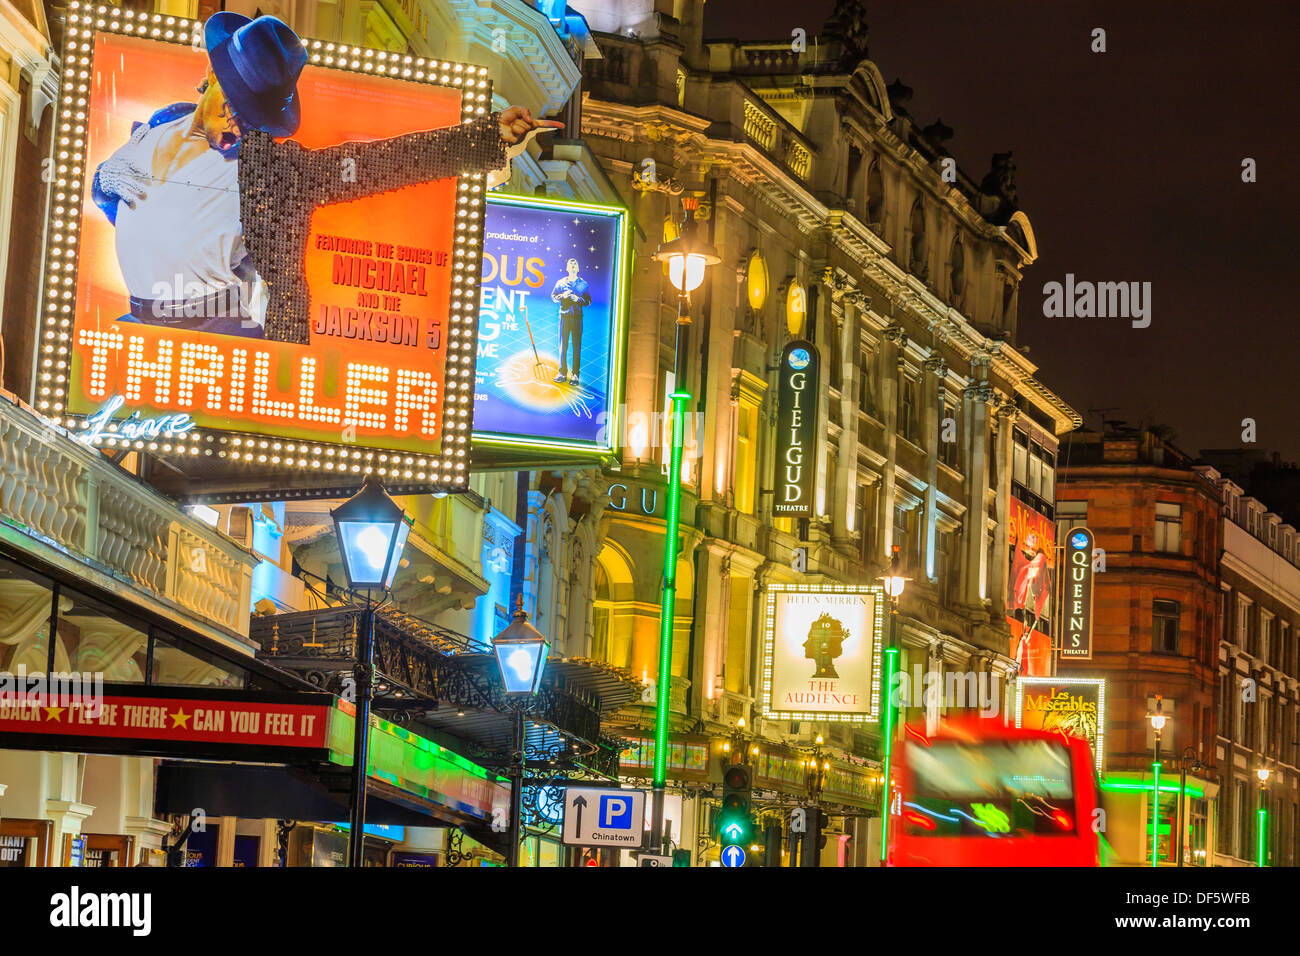 Lyric Theatre Shaftesbury Avenue London England in evening light - Stock Image